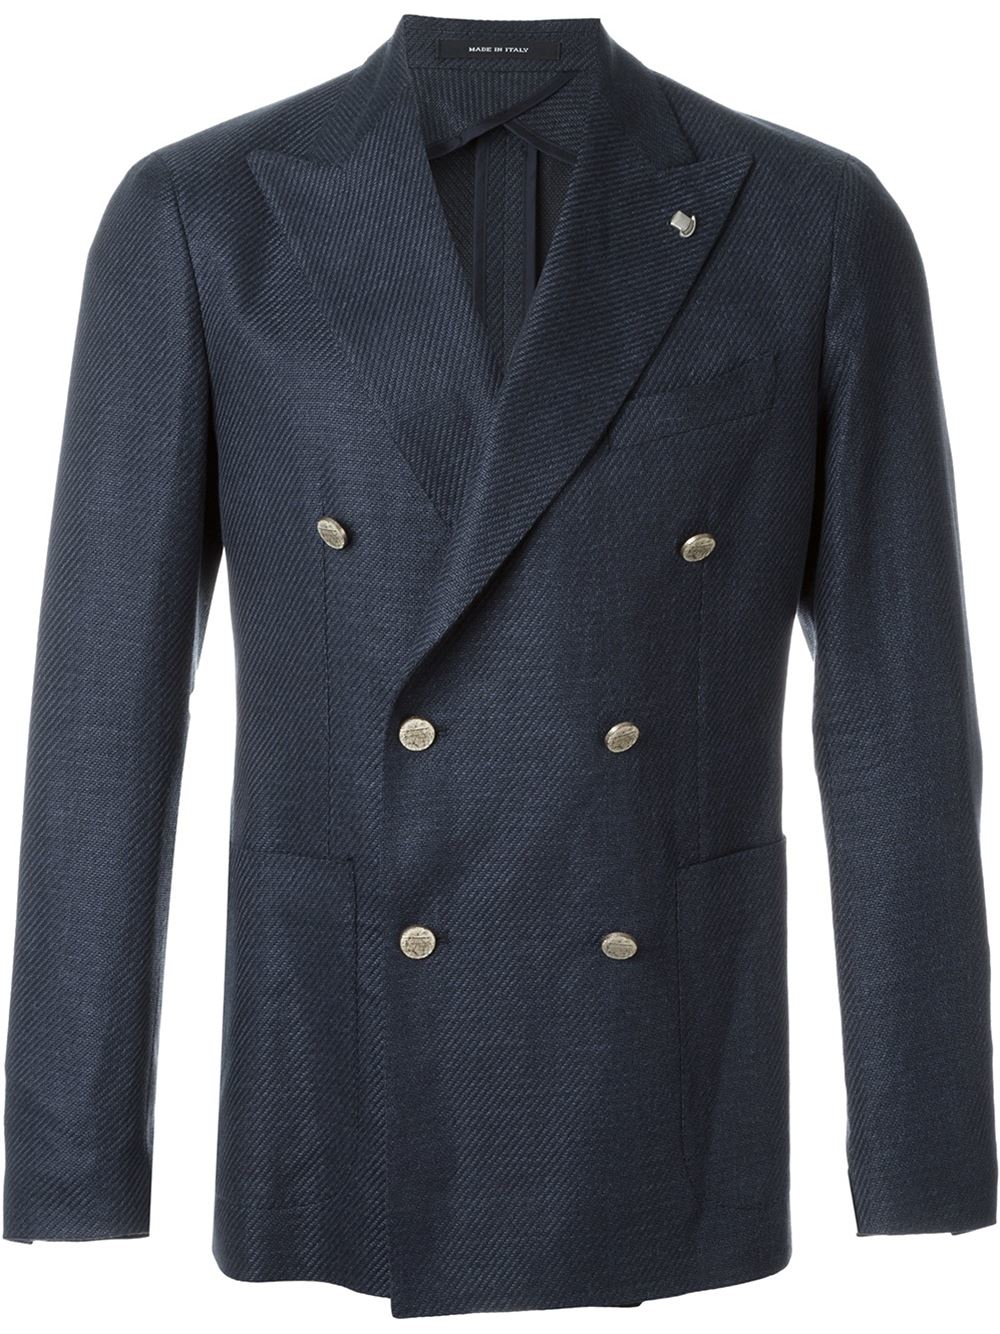 Looking for diverse colors and designs blazers sizes, velvet blazers, sport coats, jackets and double breasted blazers for men. Click here for more info!